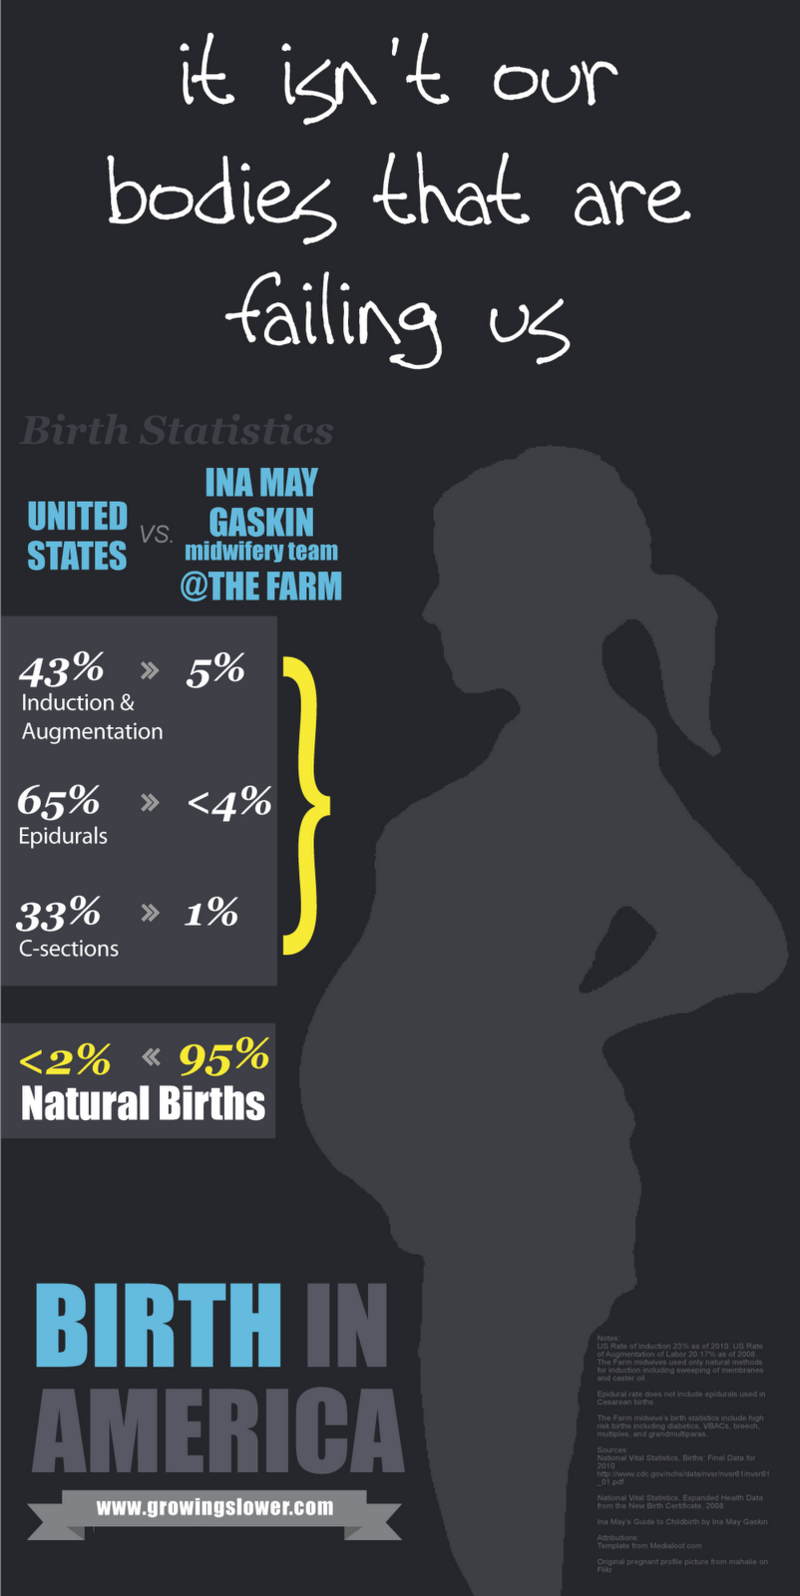 Birth-Statistics-Infographic